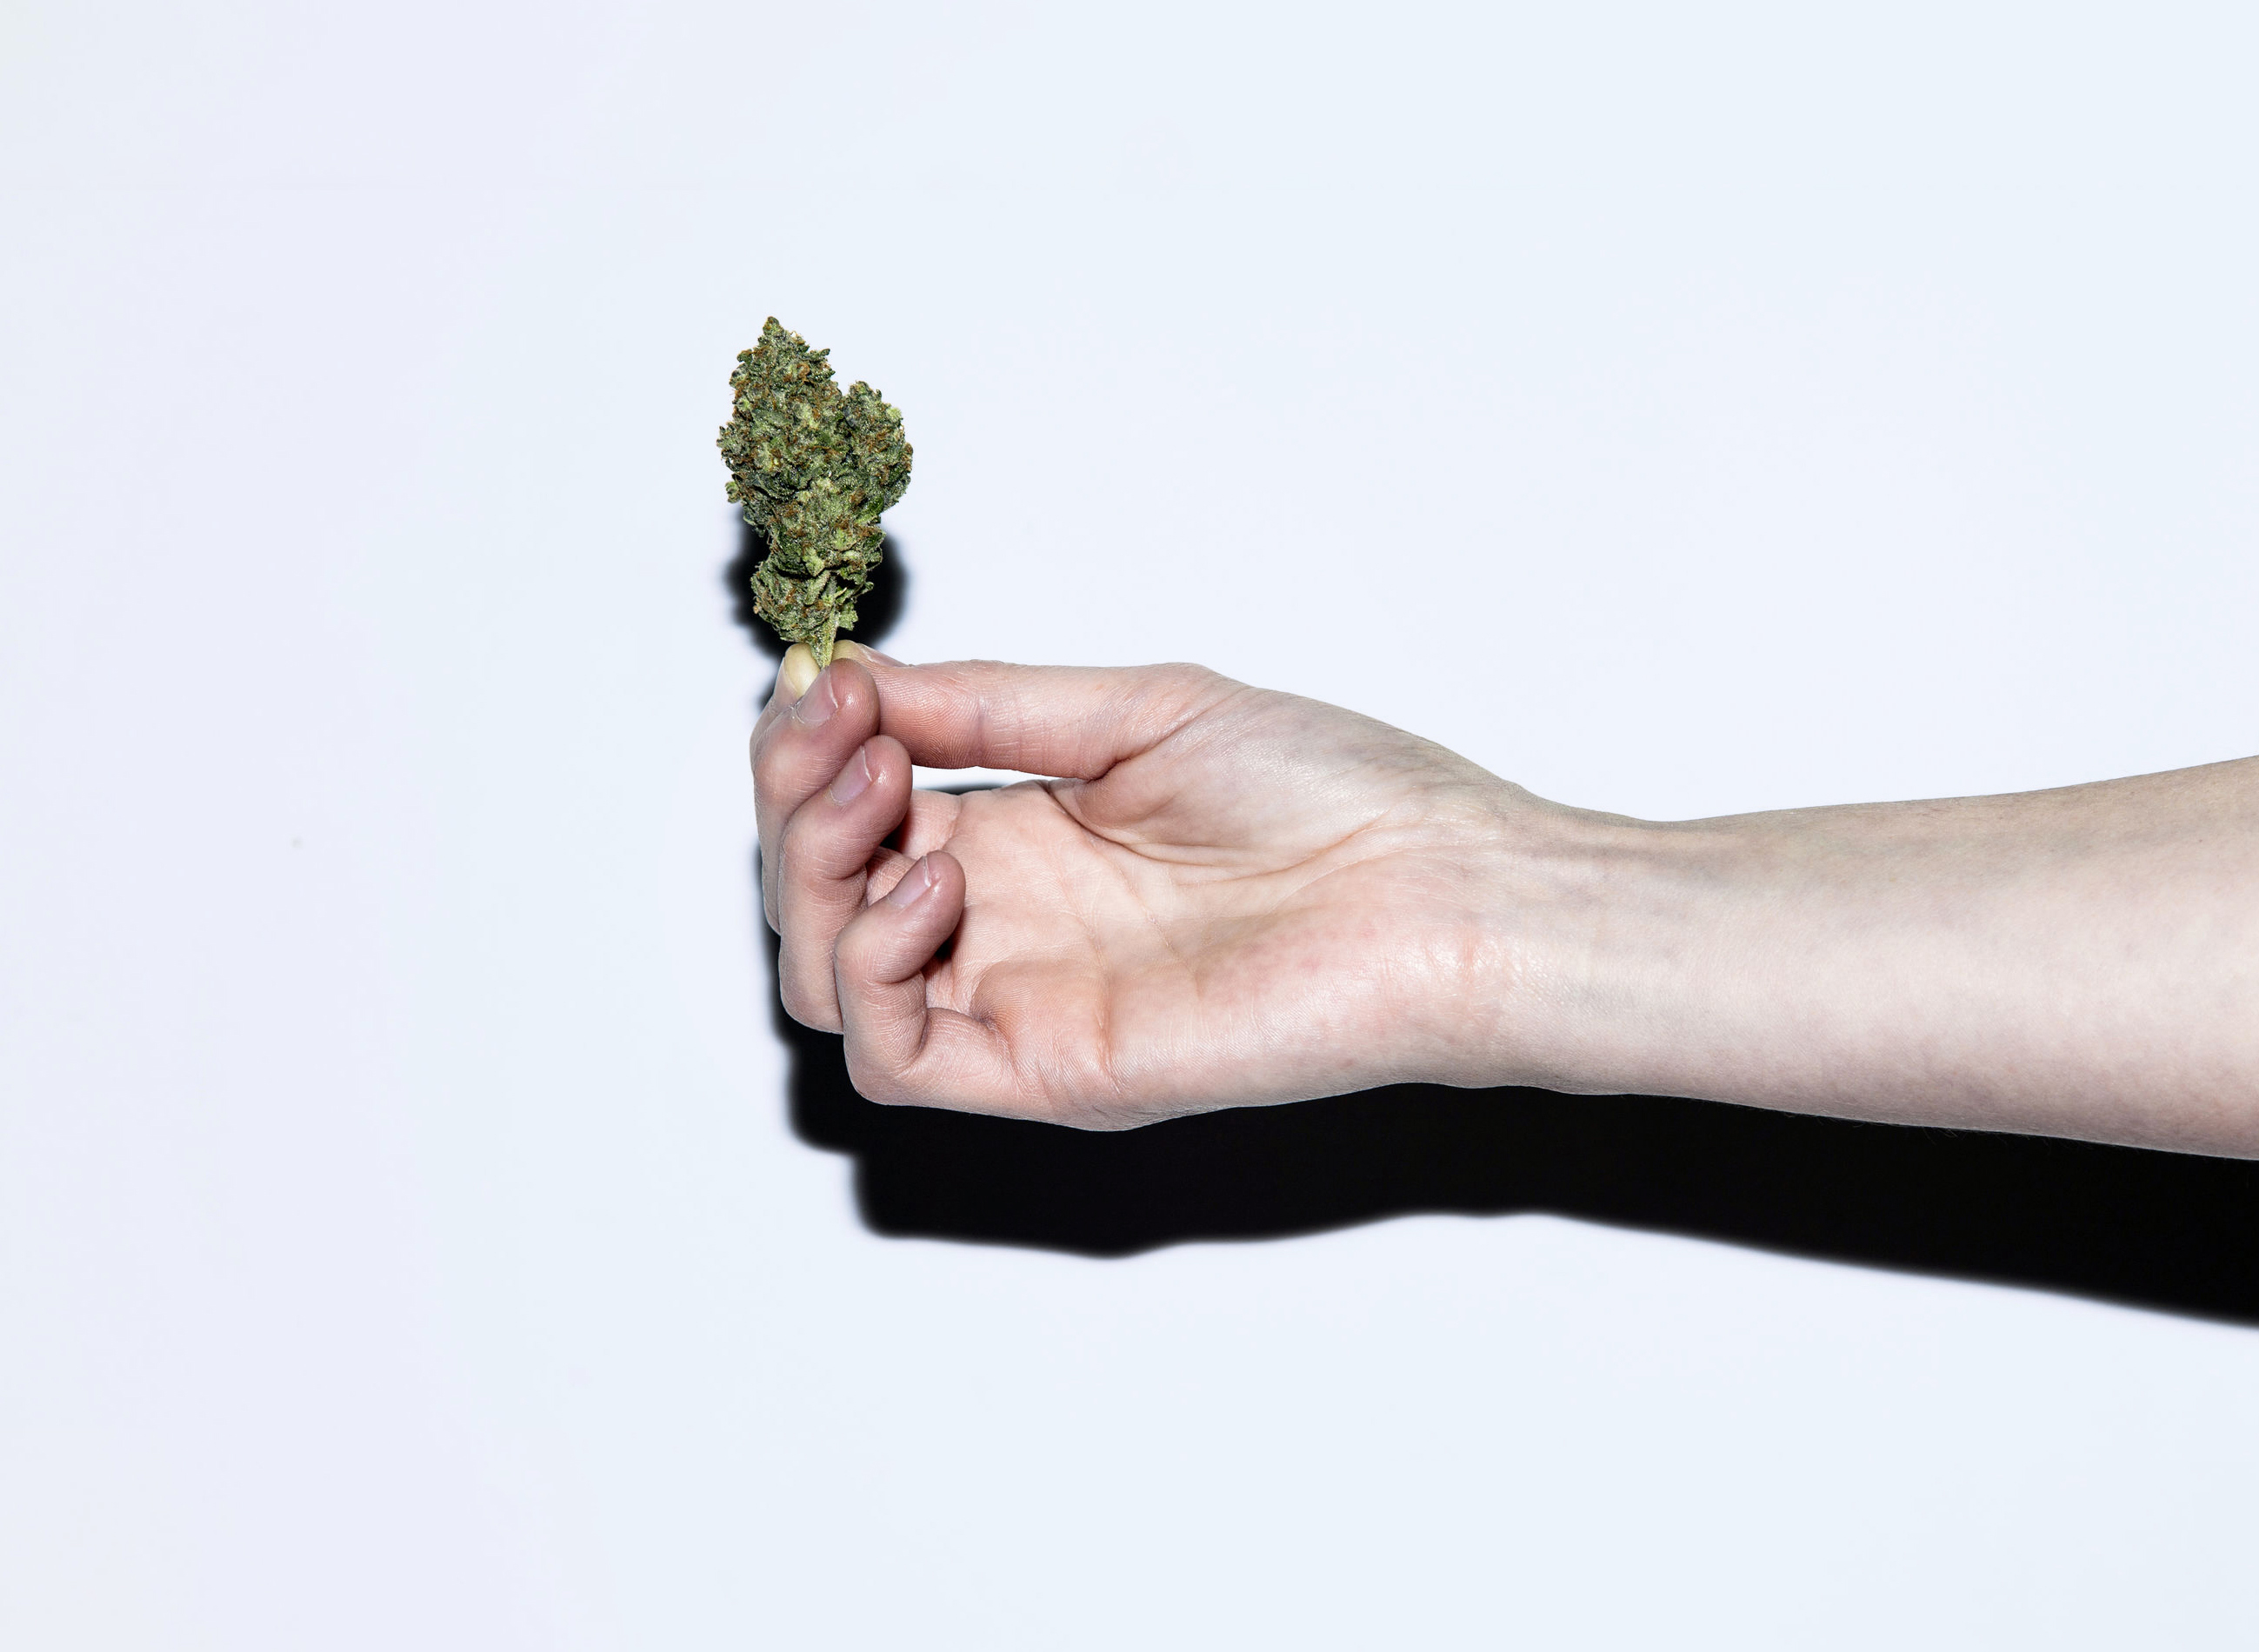 Photo of a hand holding a cannabis bud.